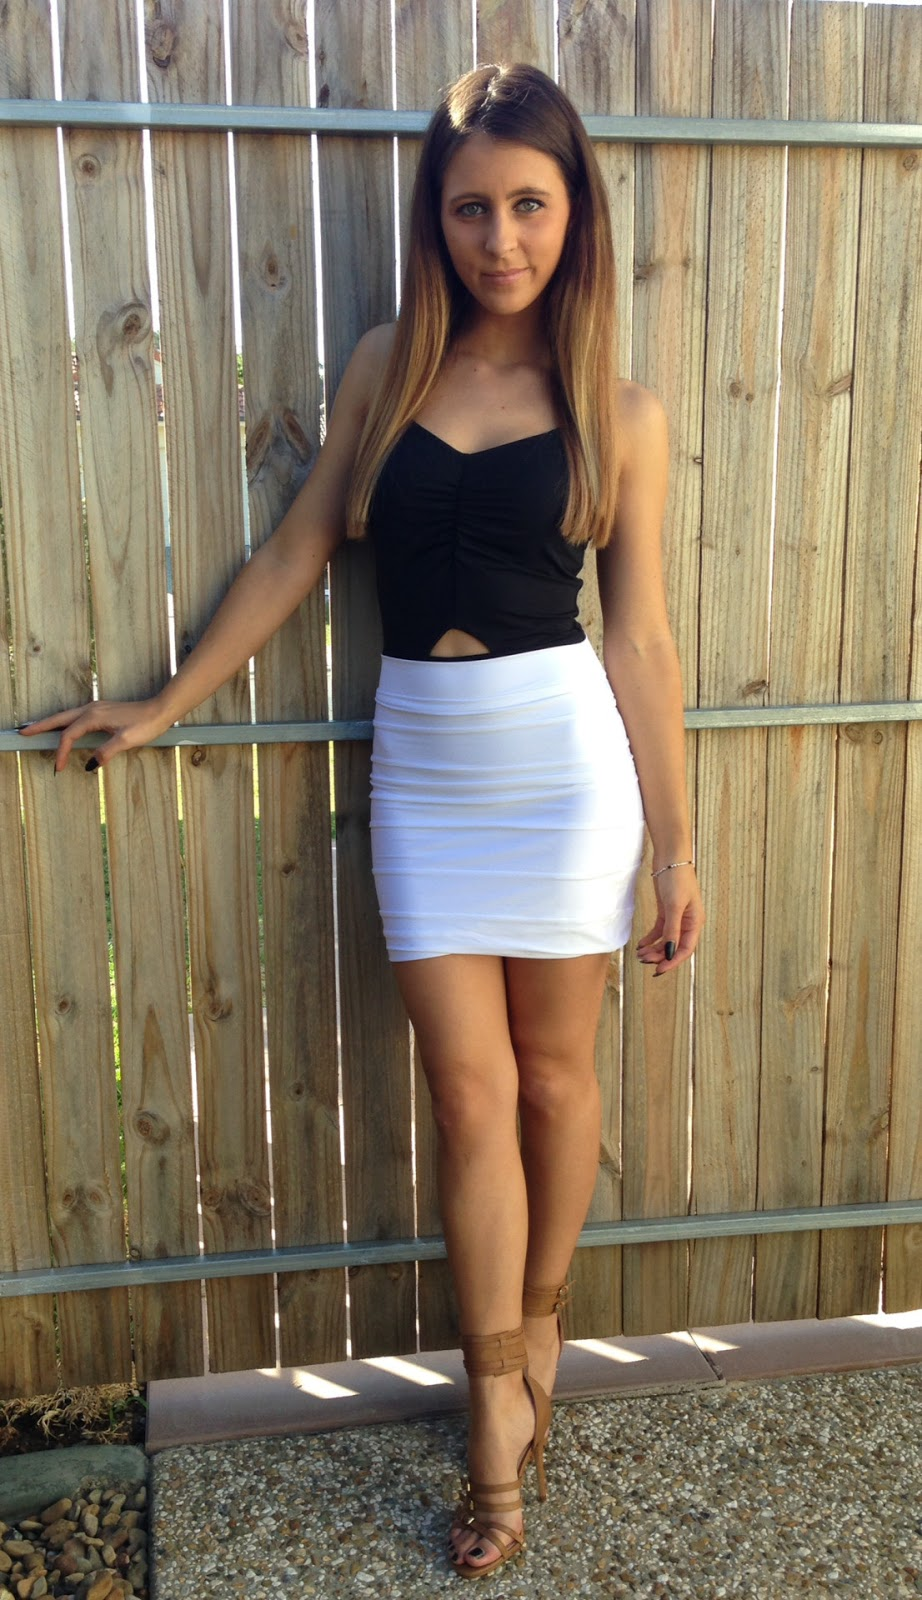 sexy-young-teen-girls-in-short-skirts